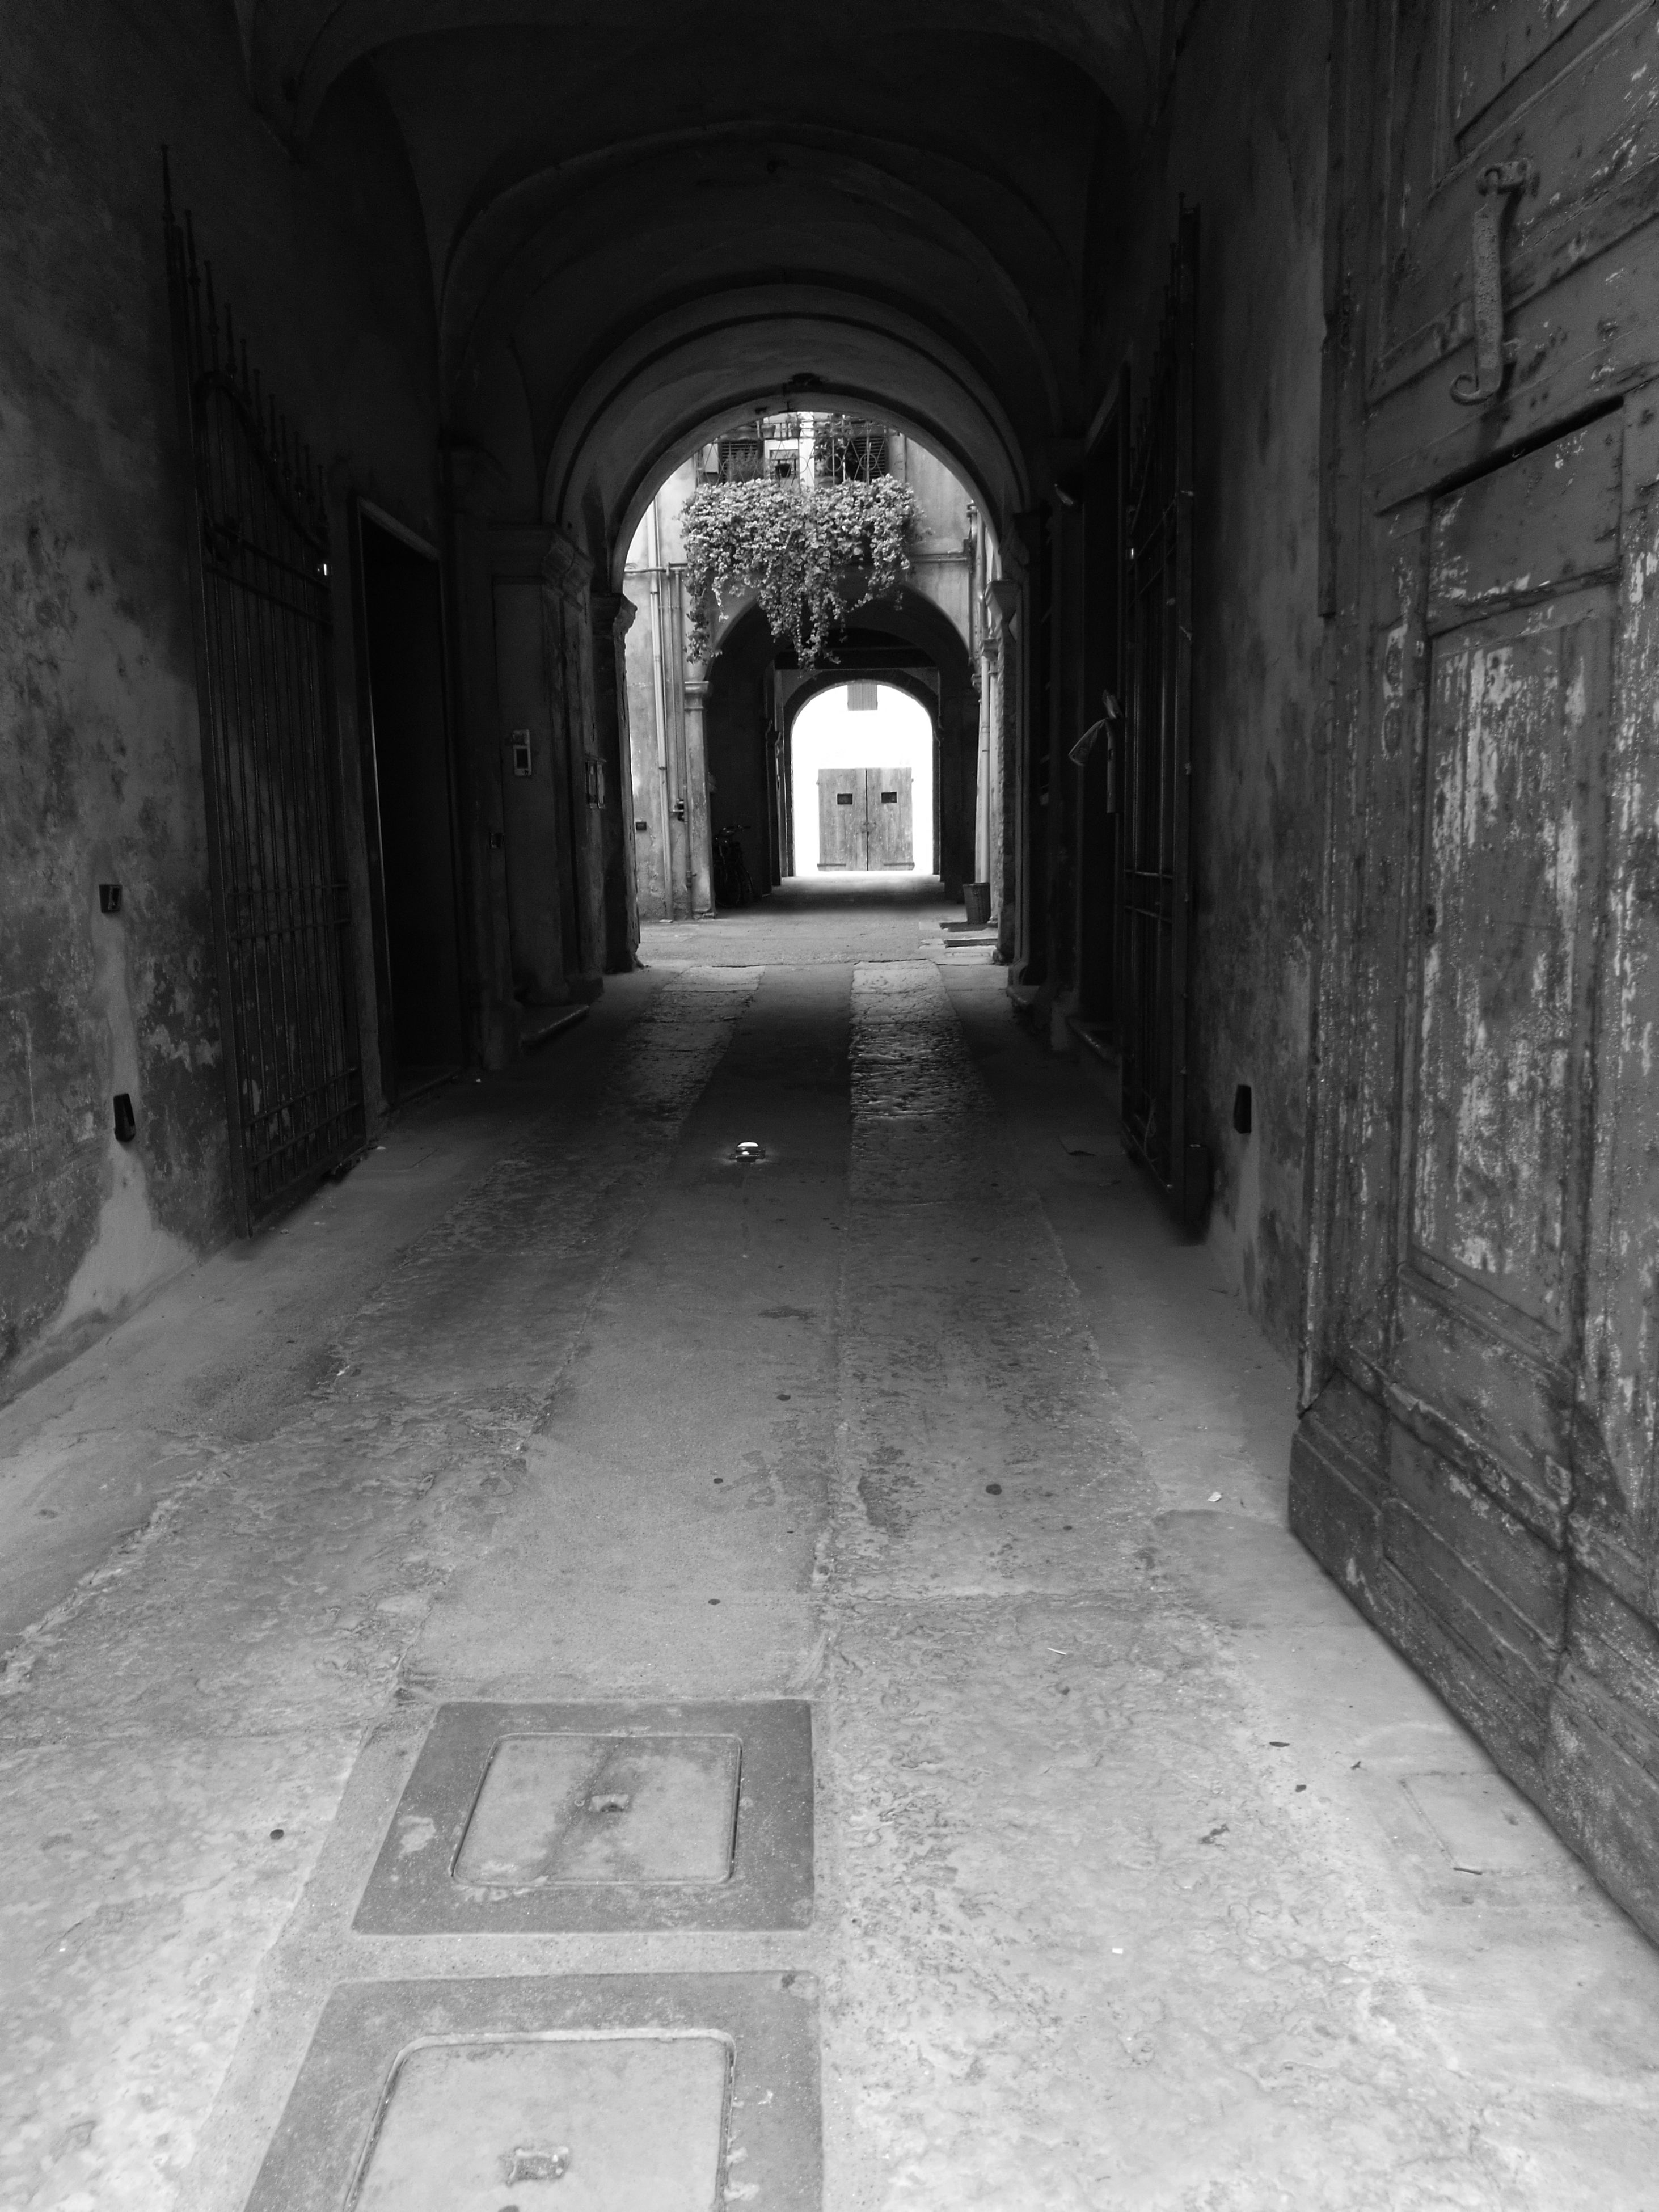 the way forward, architecture, indoors, built structure, arch, no people, day, archway, passage